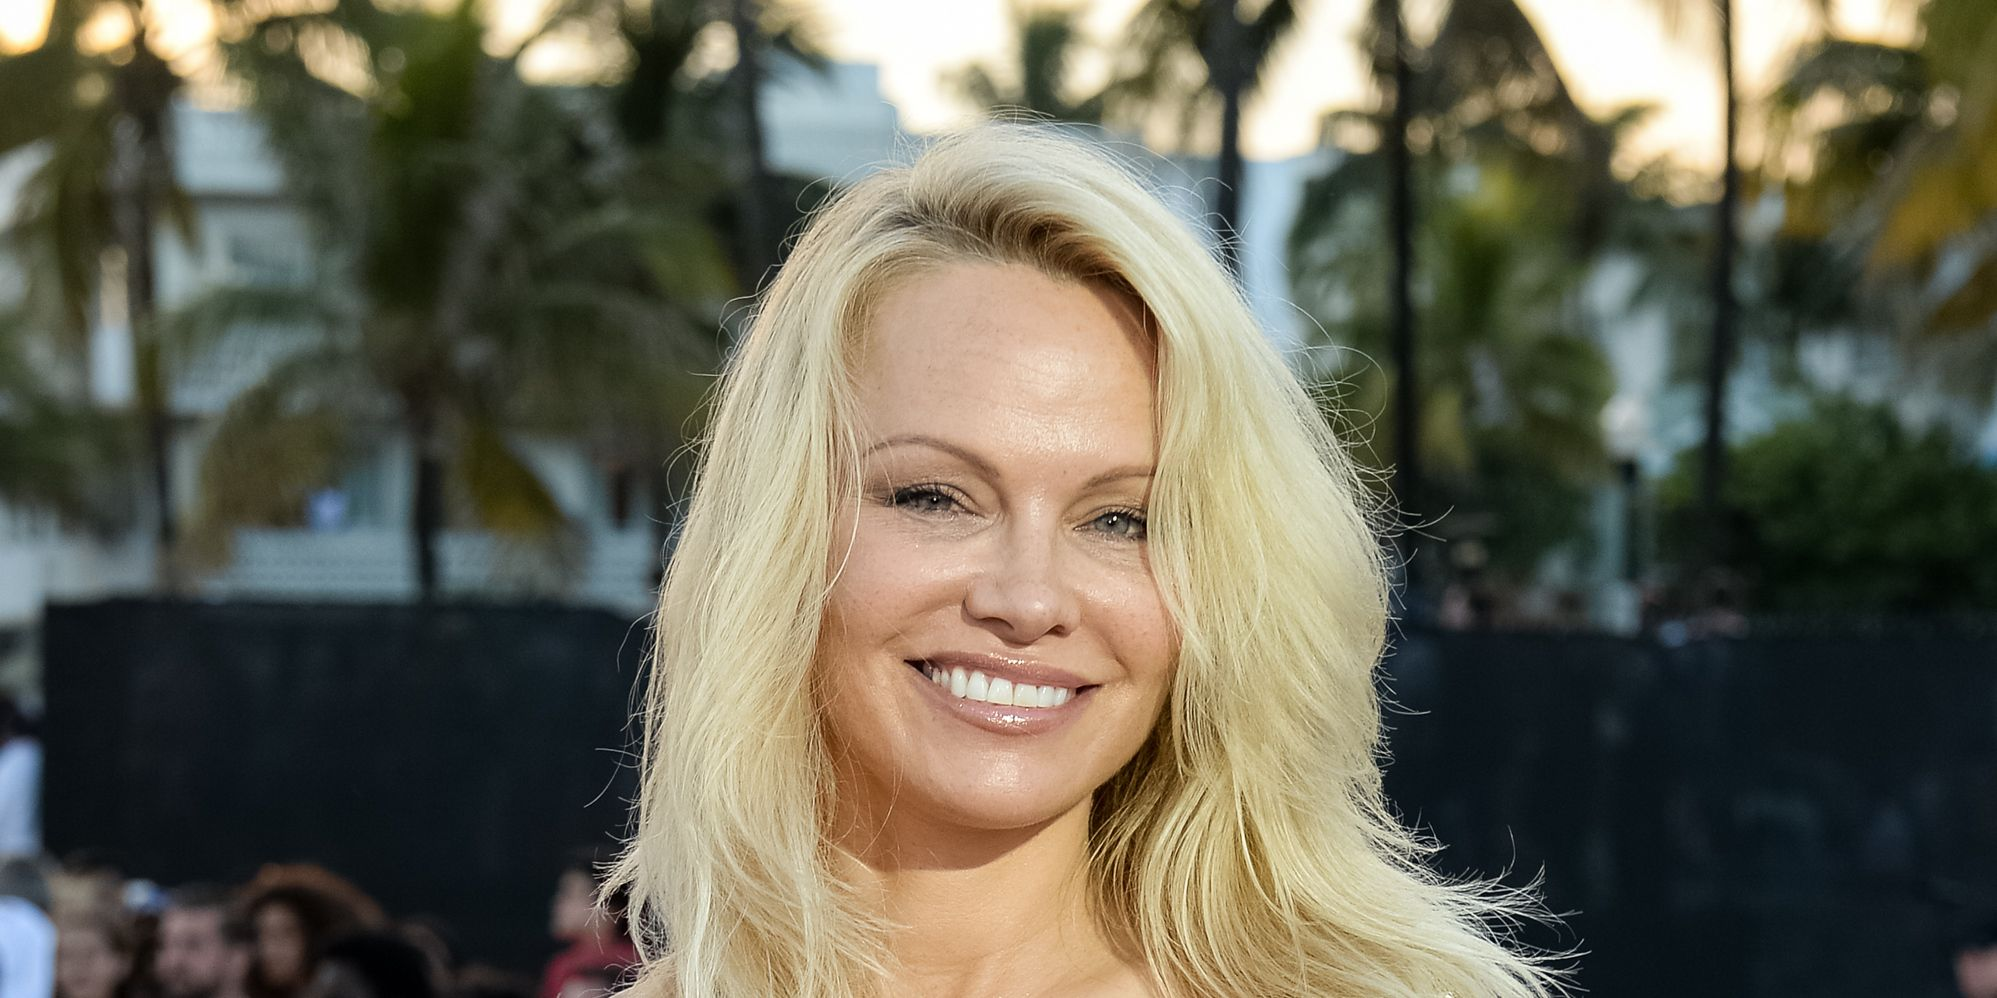 Pamela Anderson attends Paramount Pictures' World Premiere of 'Baywatch'